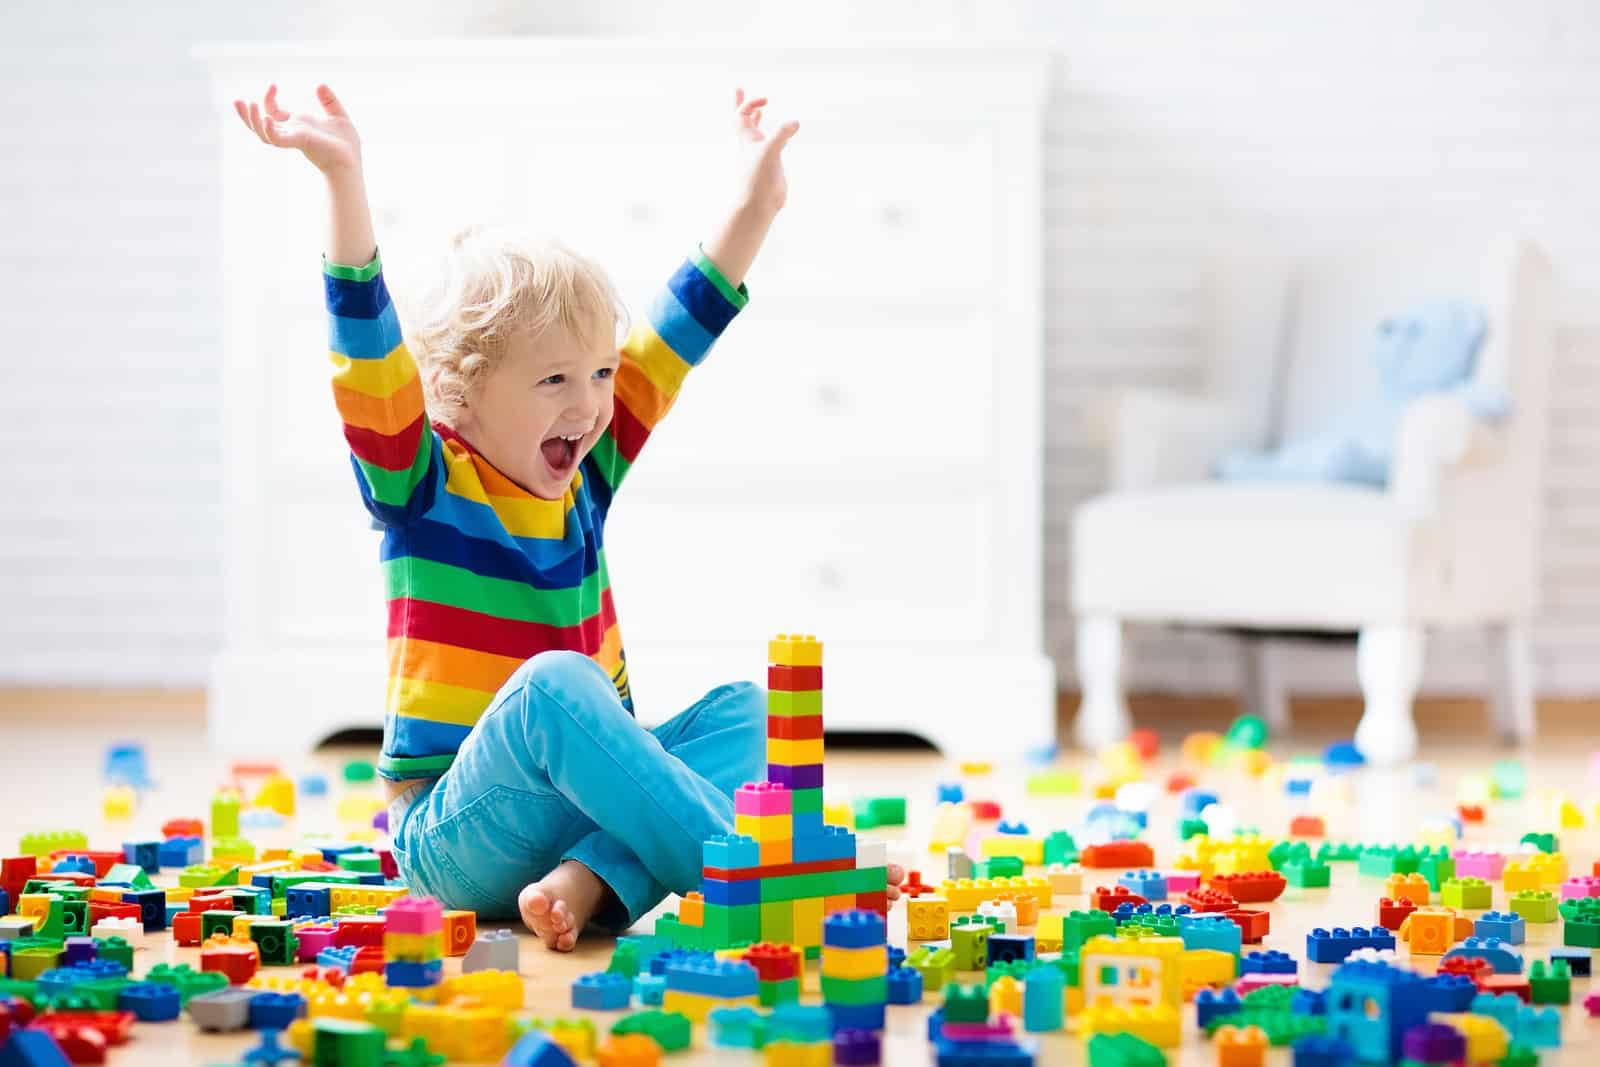 Minimalism In The Toy Room: Here Are The Only Kinds of Toys Your Kid Needs